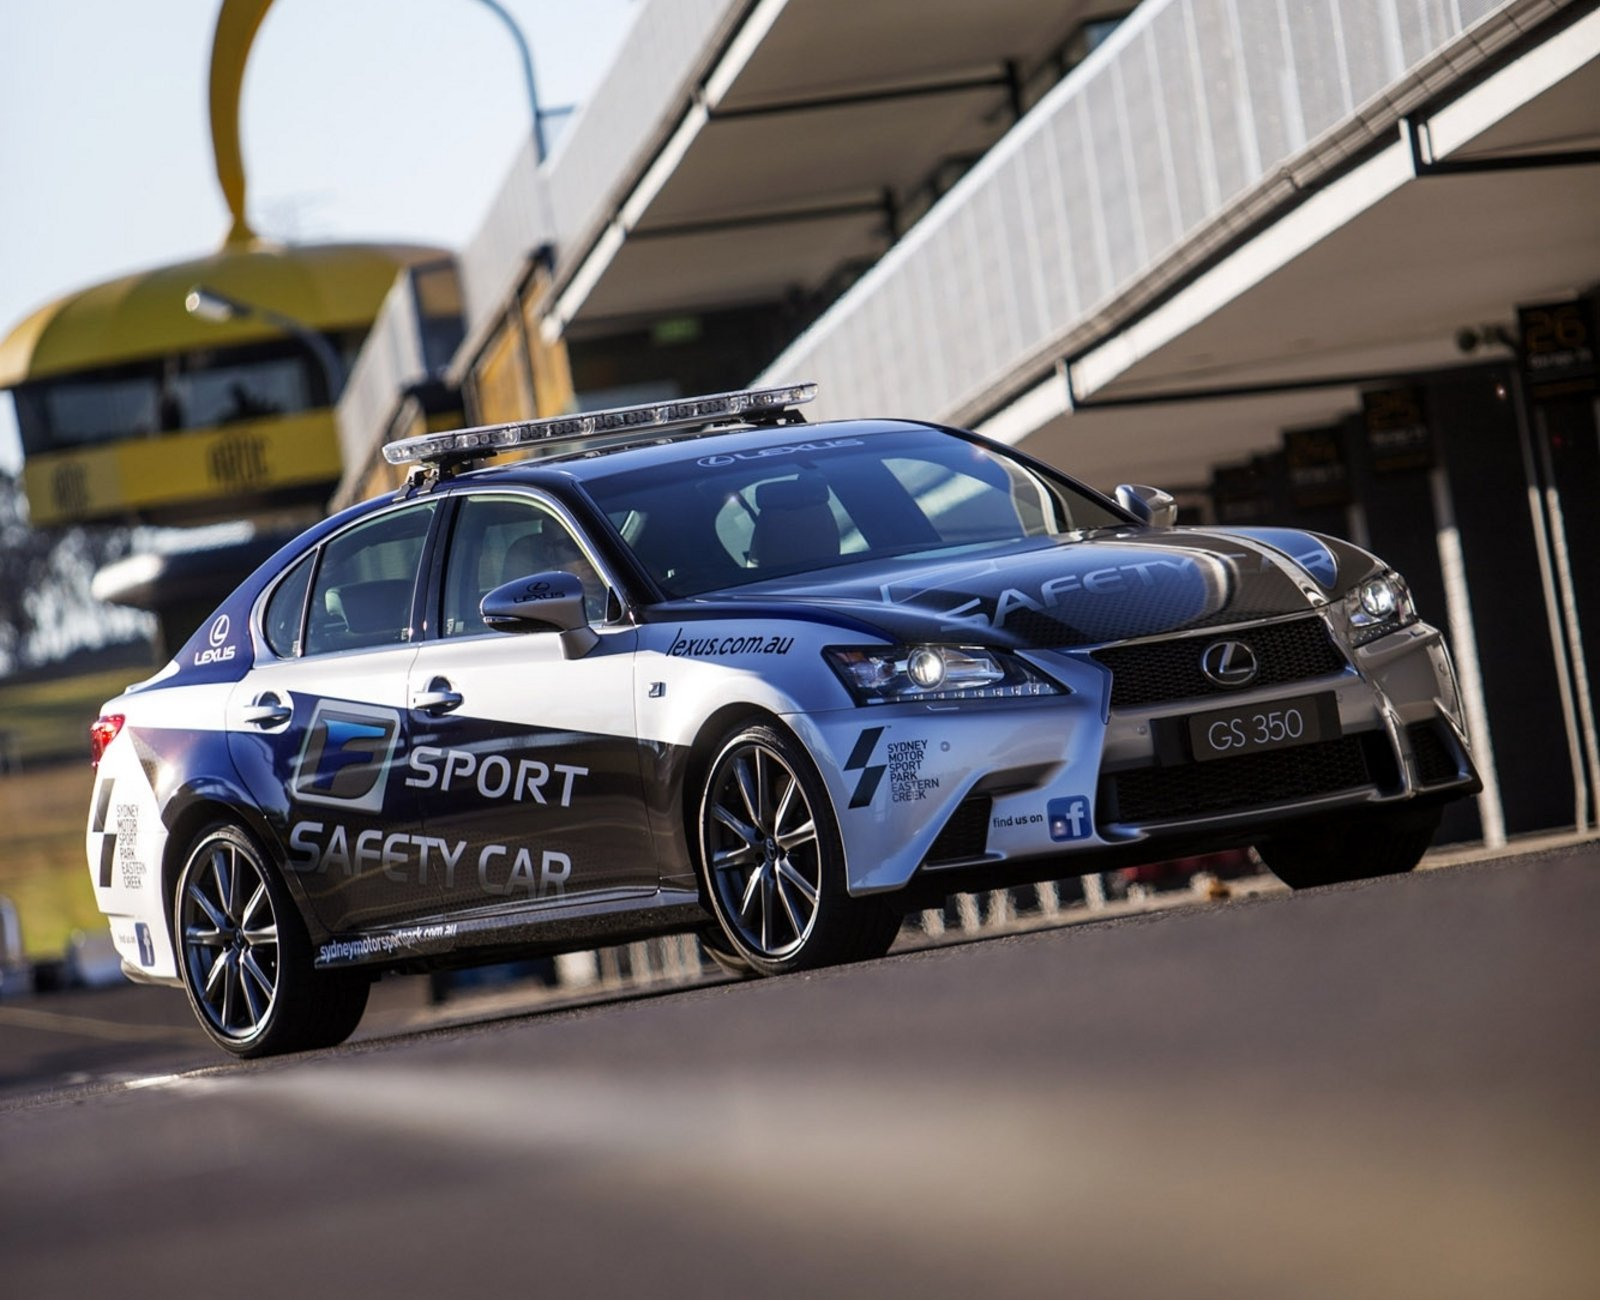 2013 lexus gs 350 f sport safety car review top speed. Black Bedroom Furniture Sets. Home Design Ideas